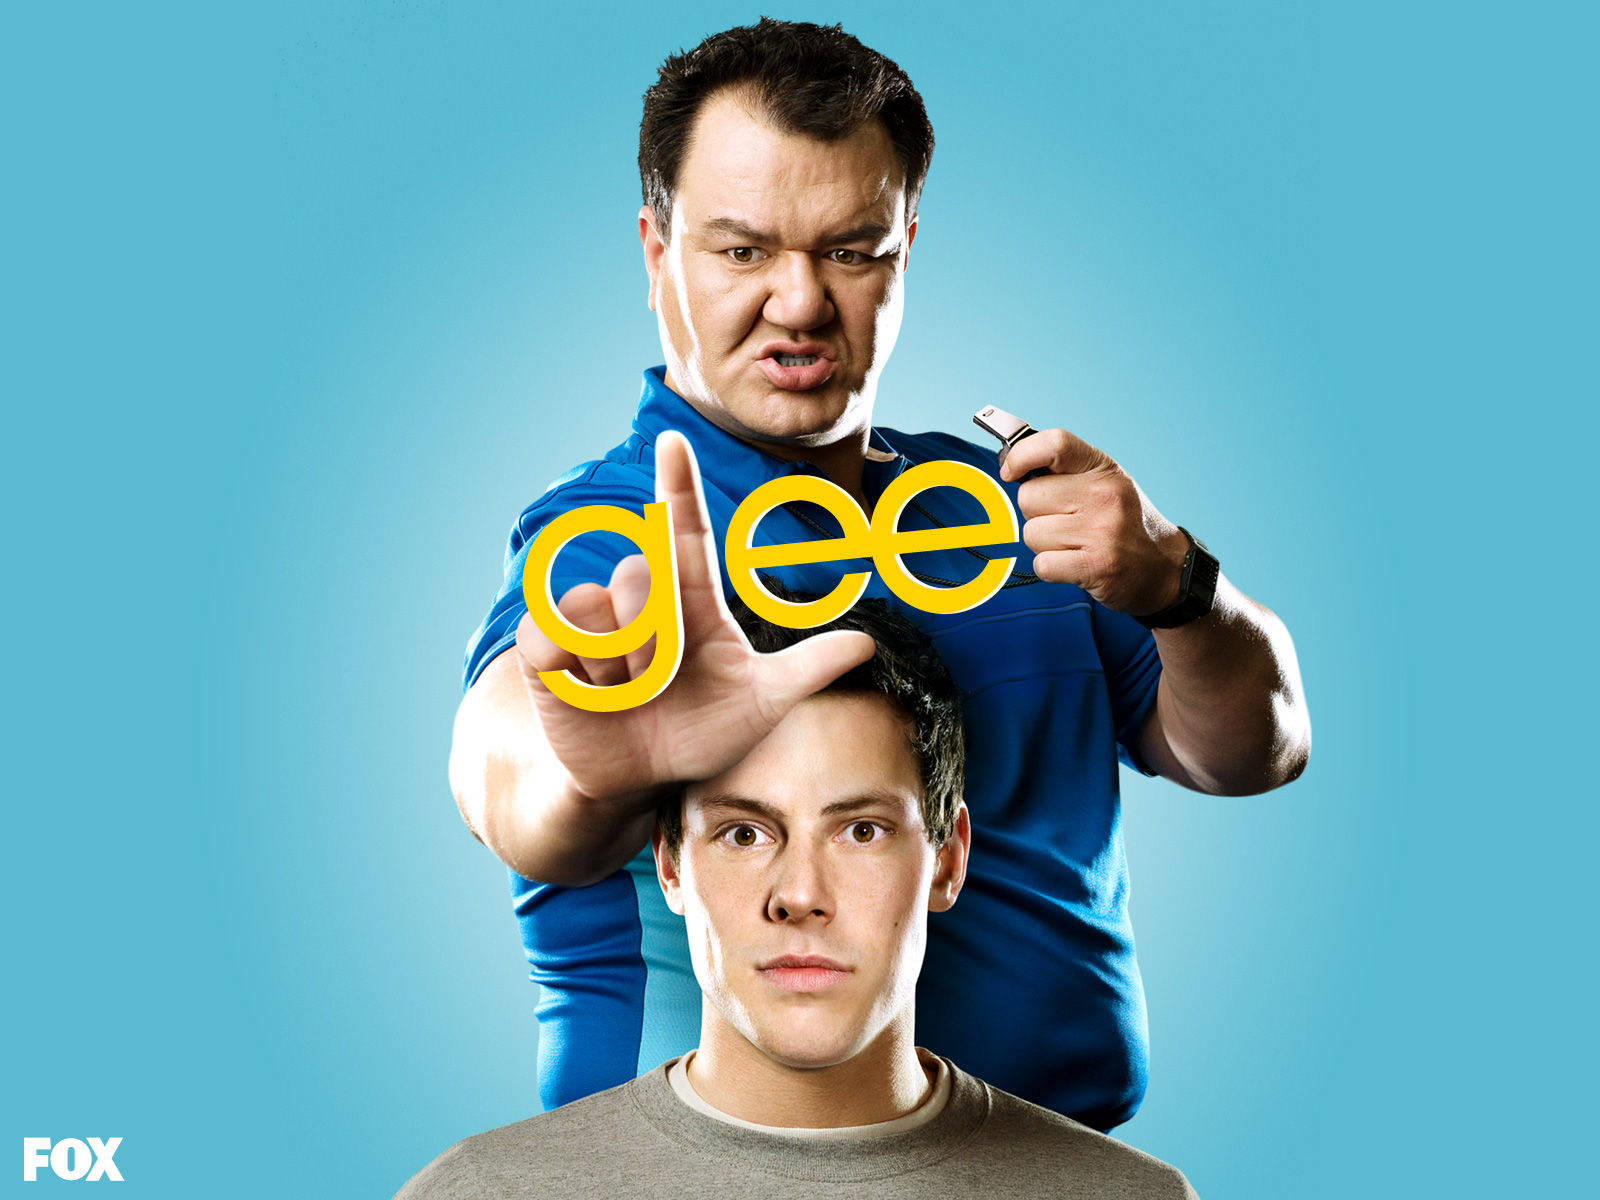 tv show glee wallpaper 20019357 size 1280x1024 more glee wallpaper 1600x1200